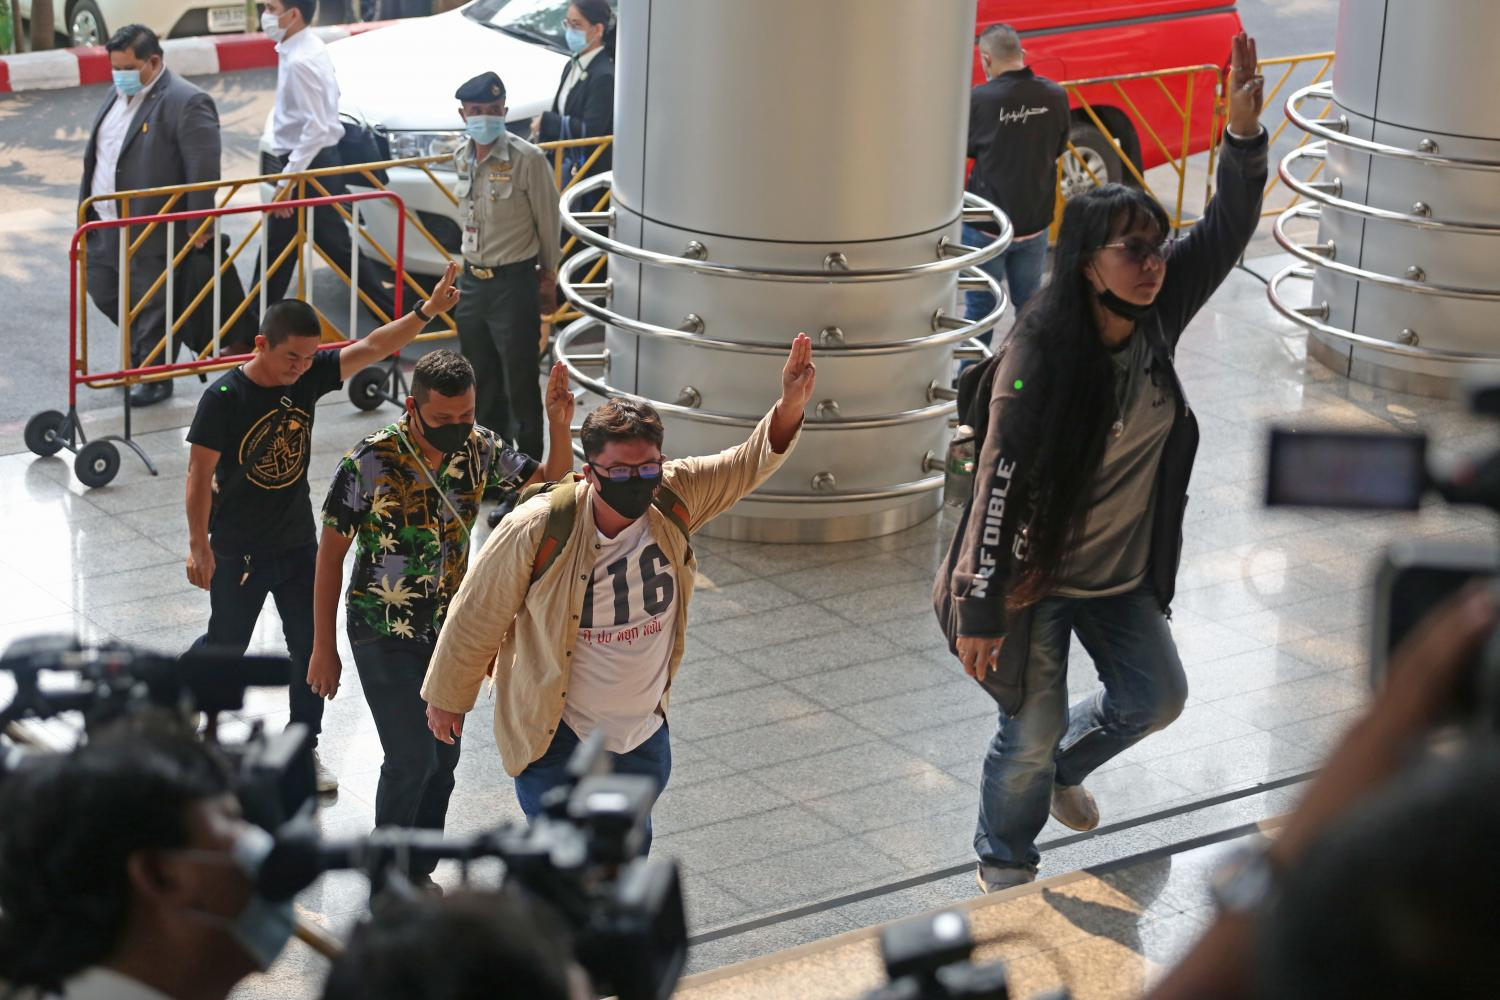 Members of the Ratsadon group flash the three-finger salute as they arrive at the Criminal Court on Ratchadaphisek Road in Bangkok. They were there to attend the court's examination of evidence in the case against several anti-government protest leaders.Varuth Hirunyatheb